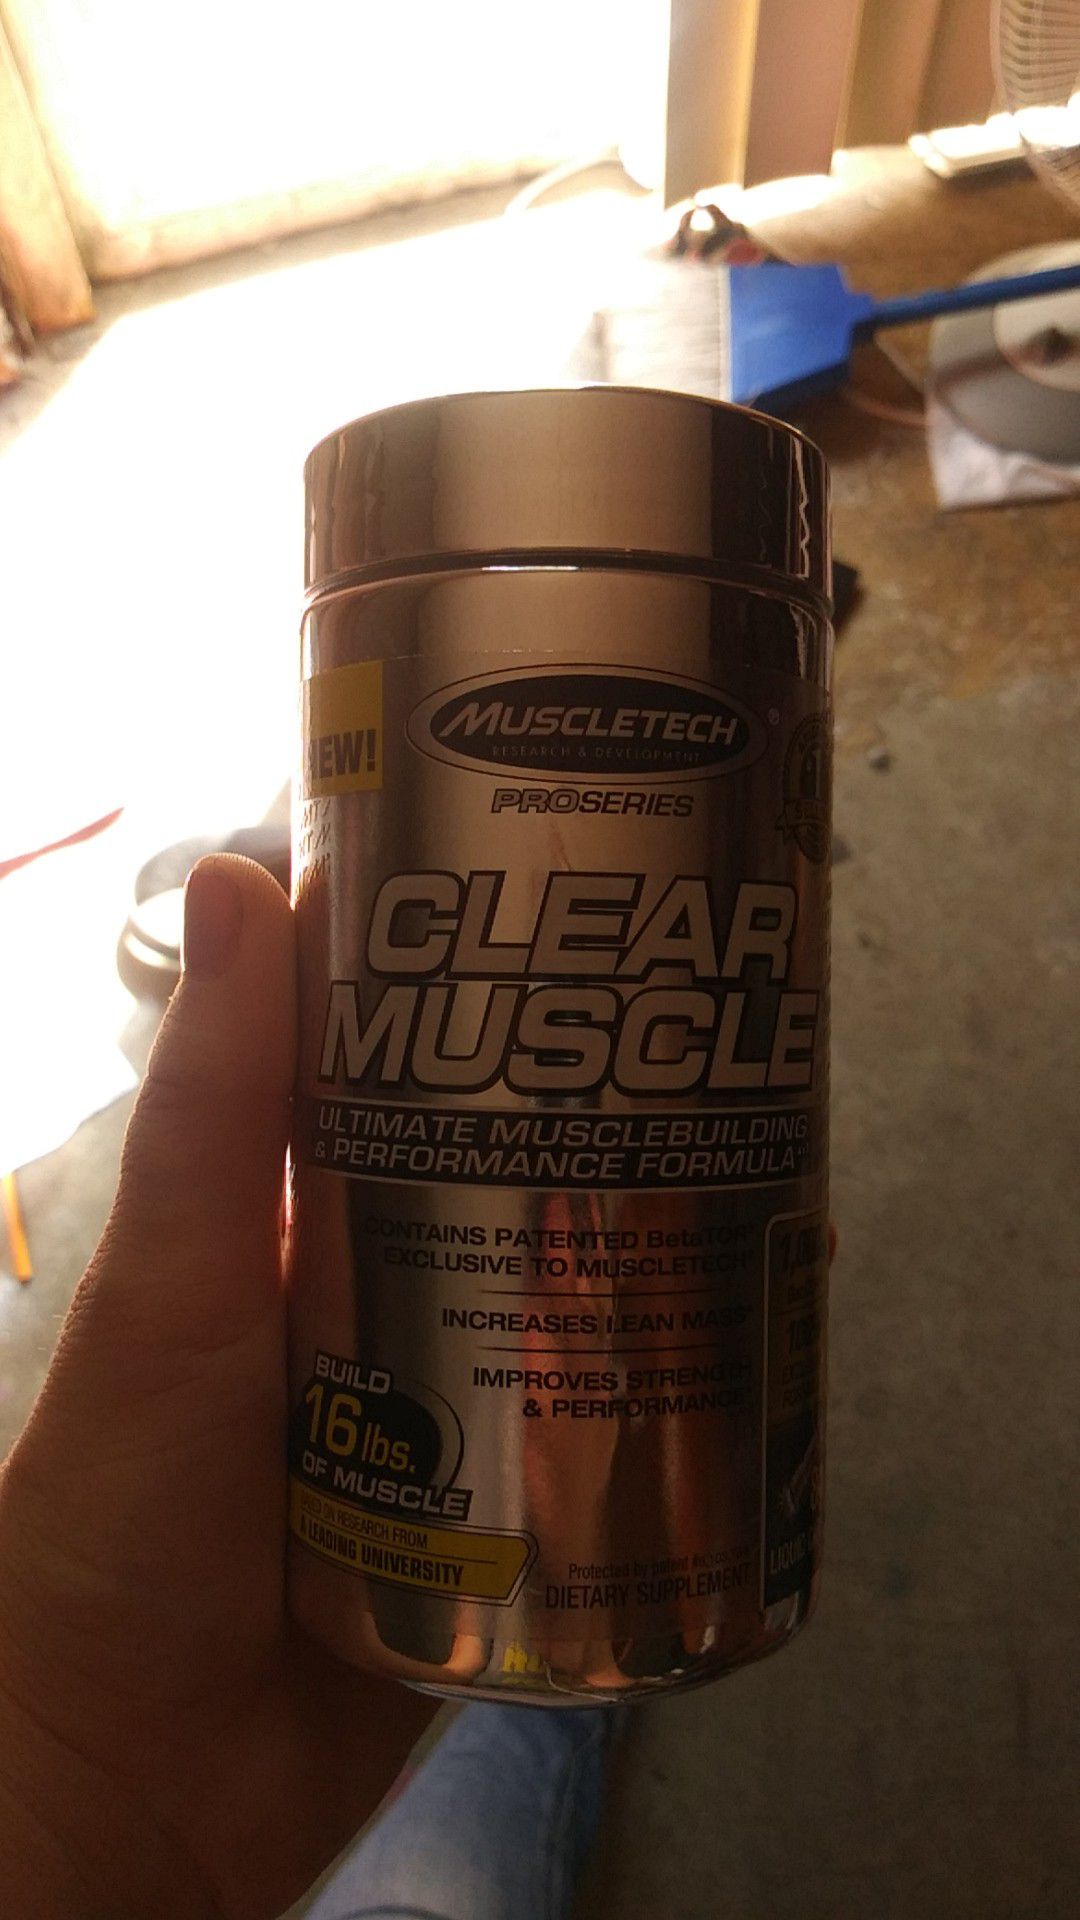 Cellucore and Muscletech dietary supplements